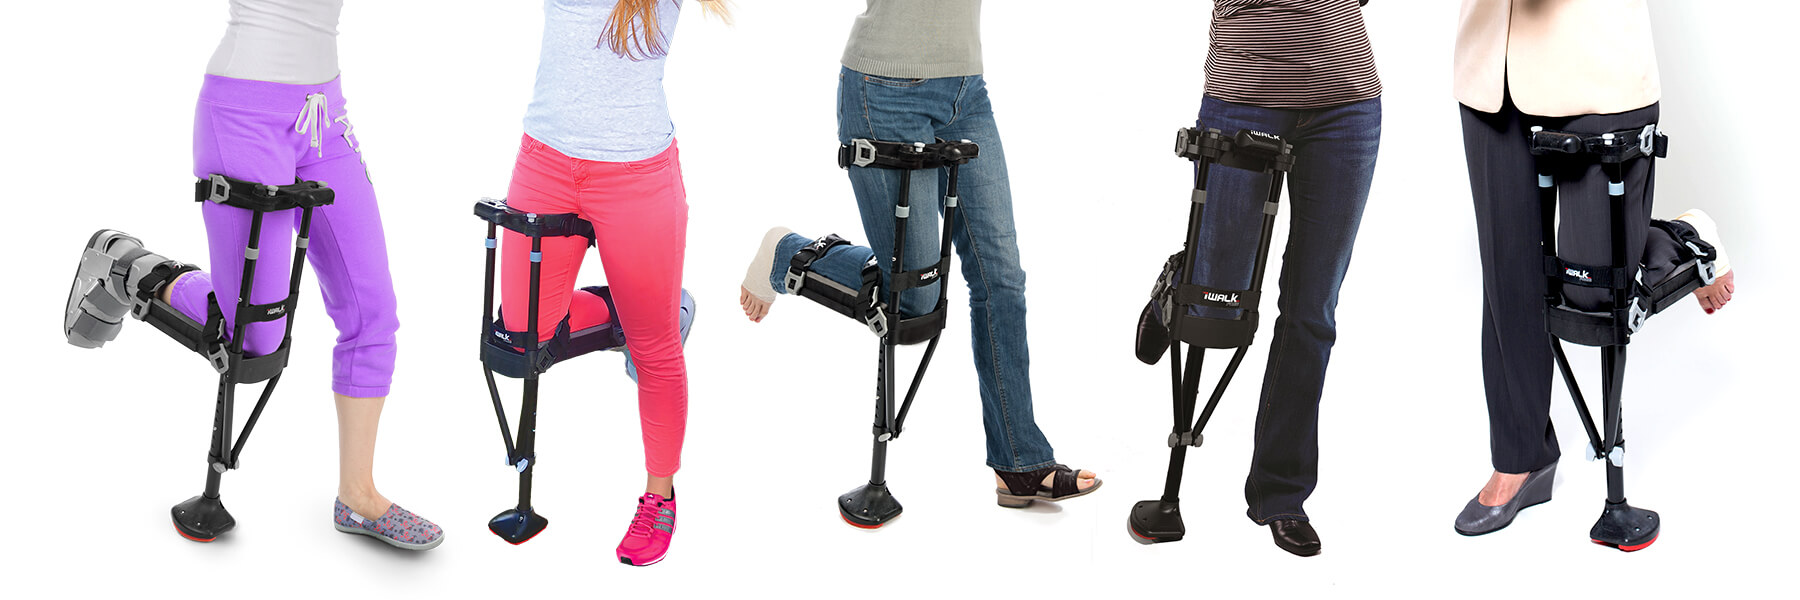 PeglegsUK - Hands-free crutches in the UK